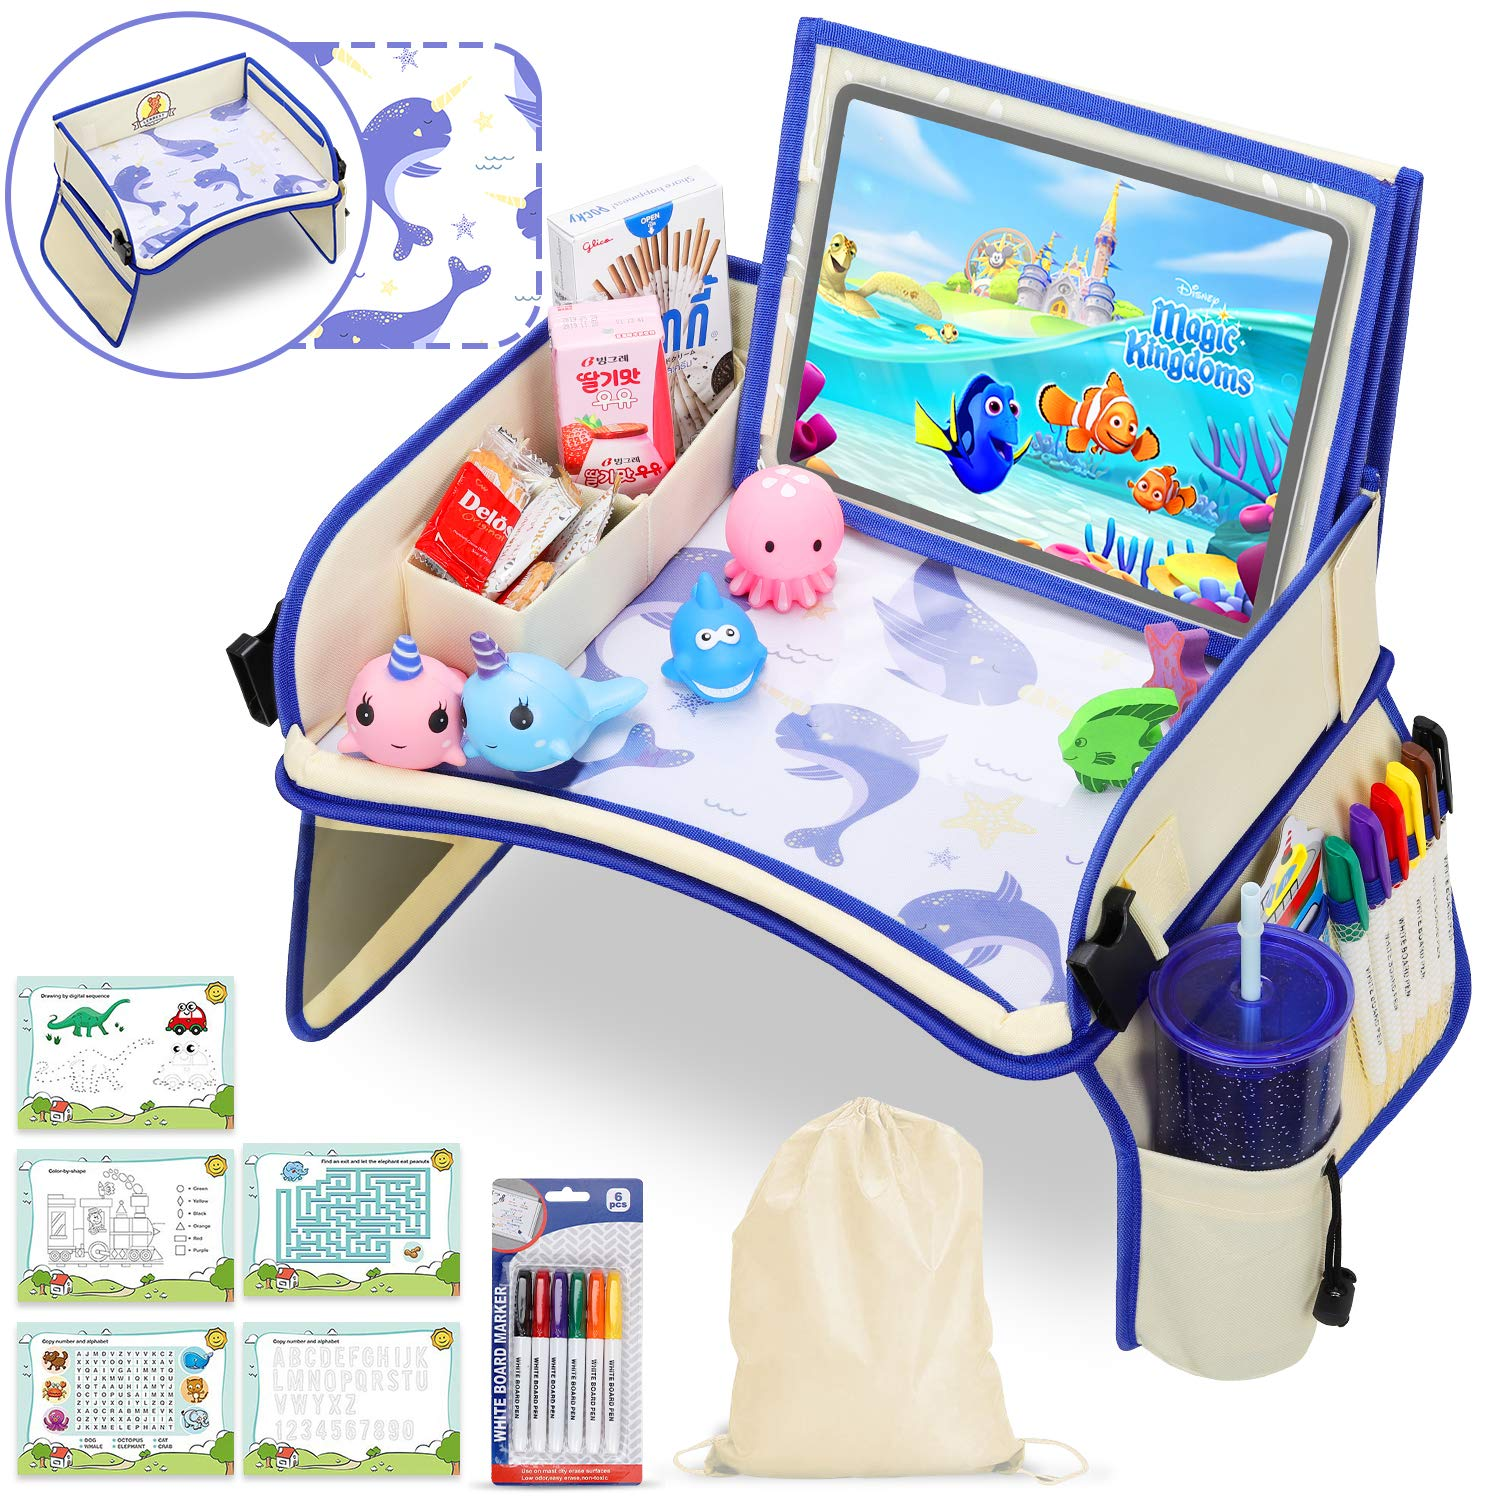 Kids Travel Tray, Car Seat Tray with XL (14.5 Inch) Detachable iPad Tablet Pocket Dry-Erase Desktop Car Seat Table with 5 Drawing Papers & Back Storage Pocket, Narwhal by MOOMKEY